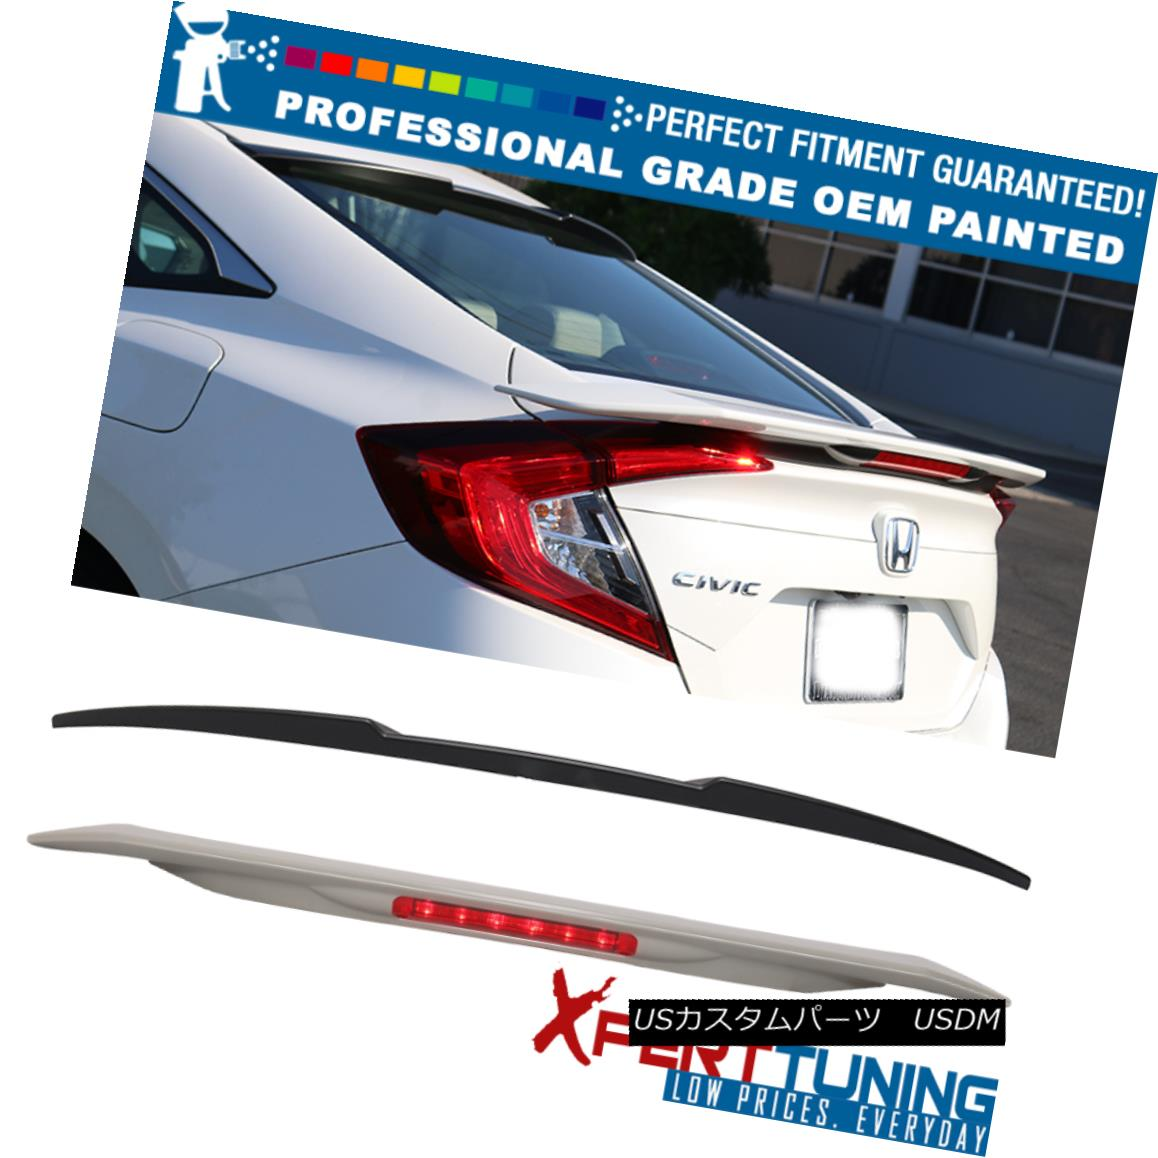 NEW PAINTED ALL COLOR 2018 for HONDA ACCORD 10th SEDAN K-STYLE ROOF SPOILER